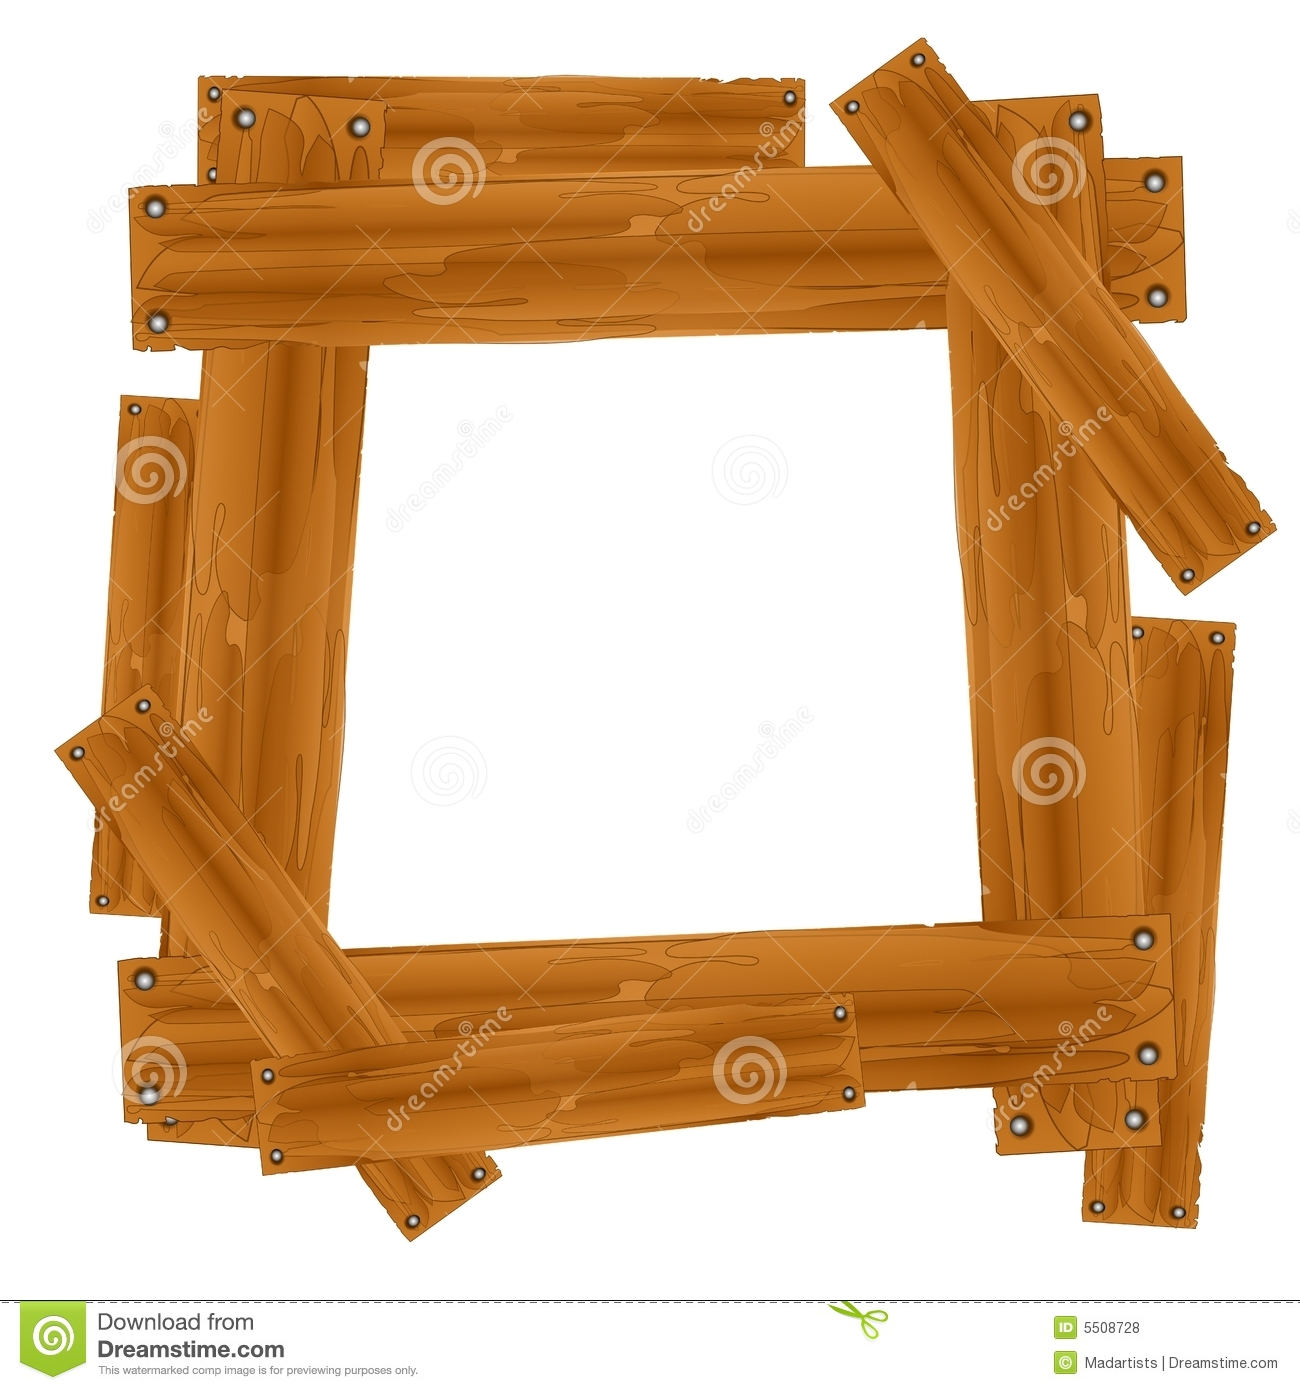 Wood border clipart suggest